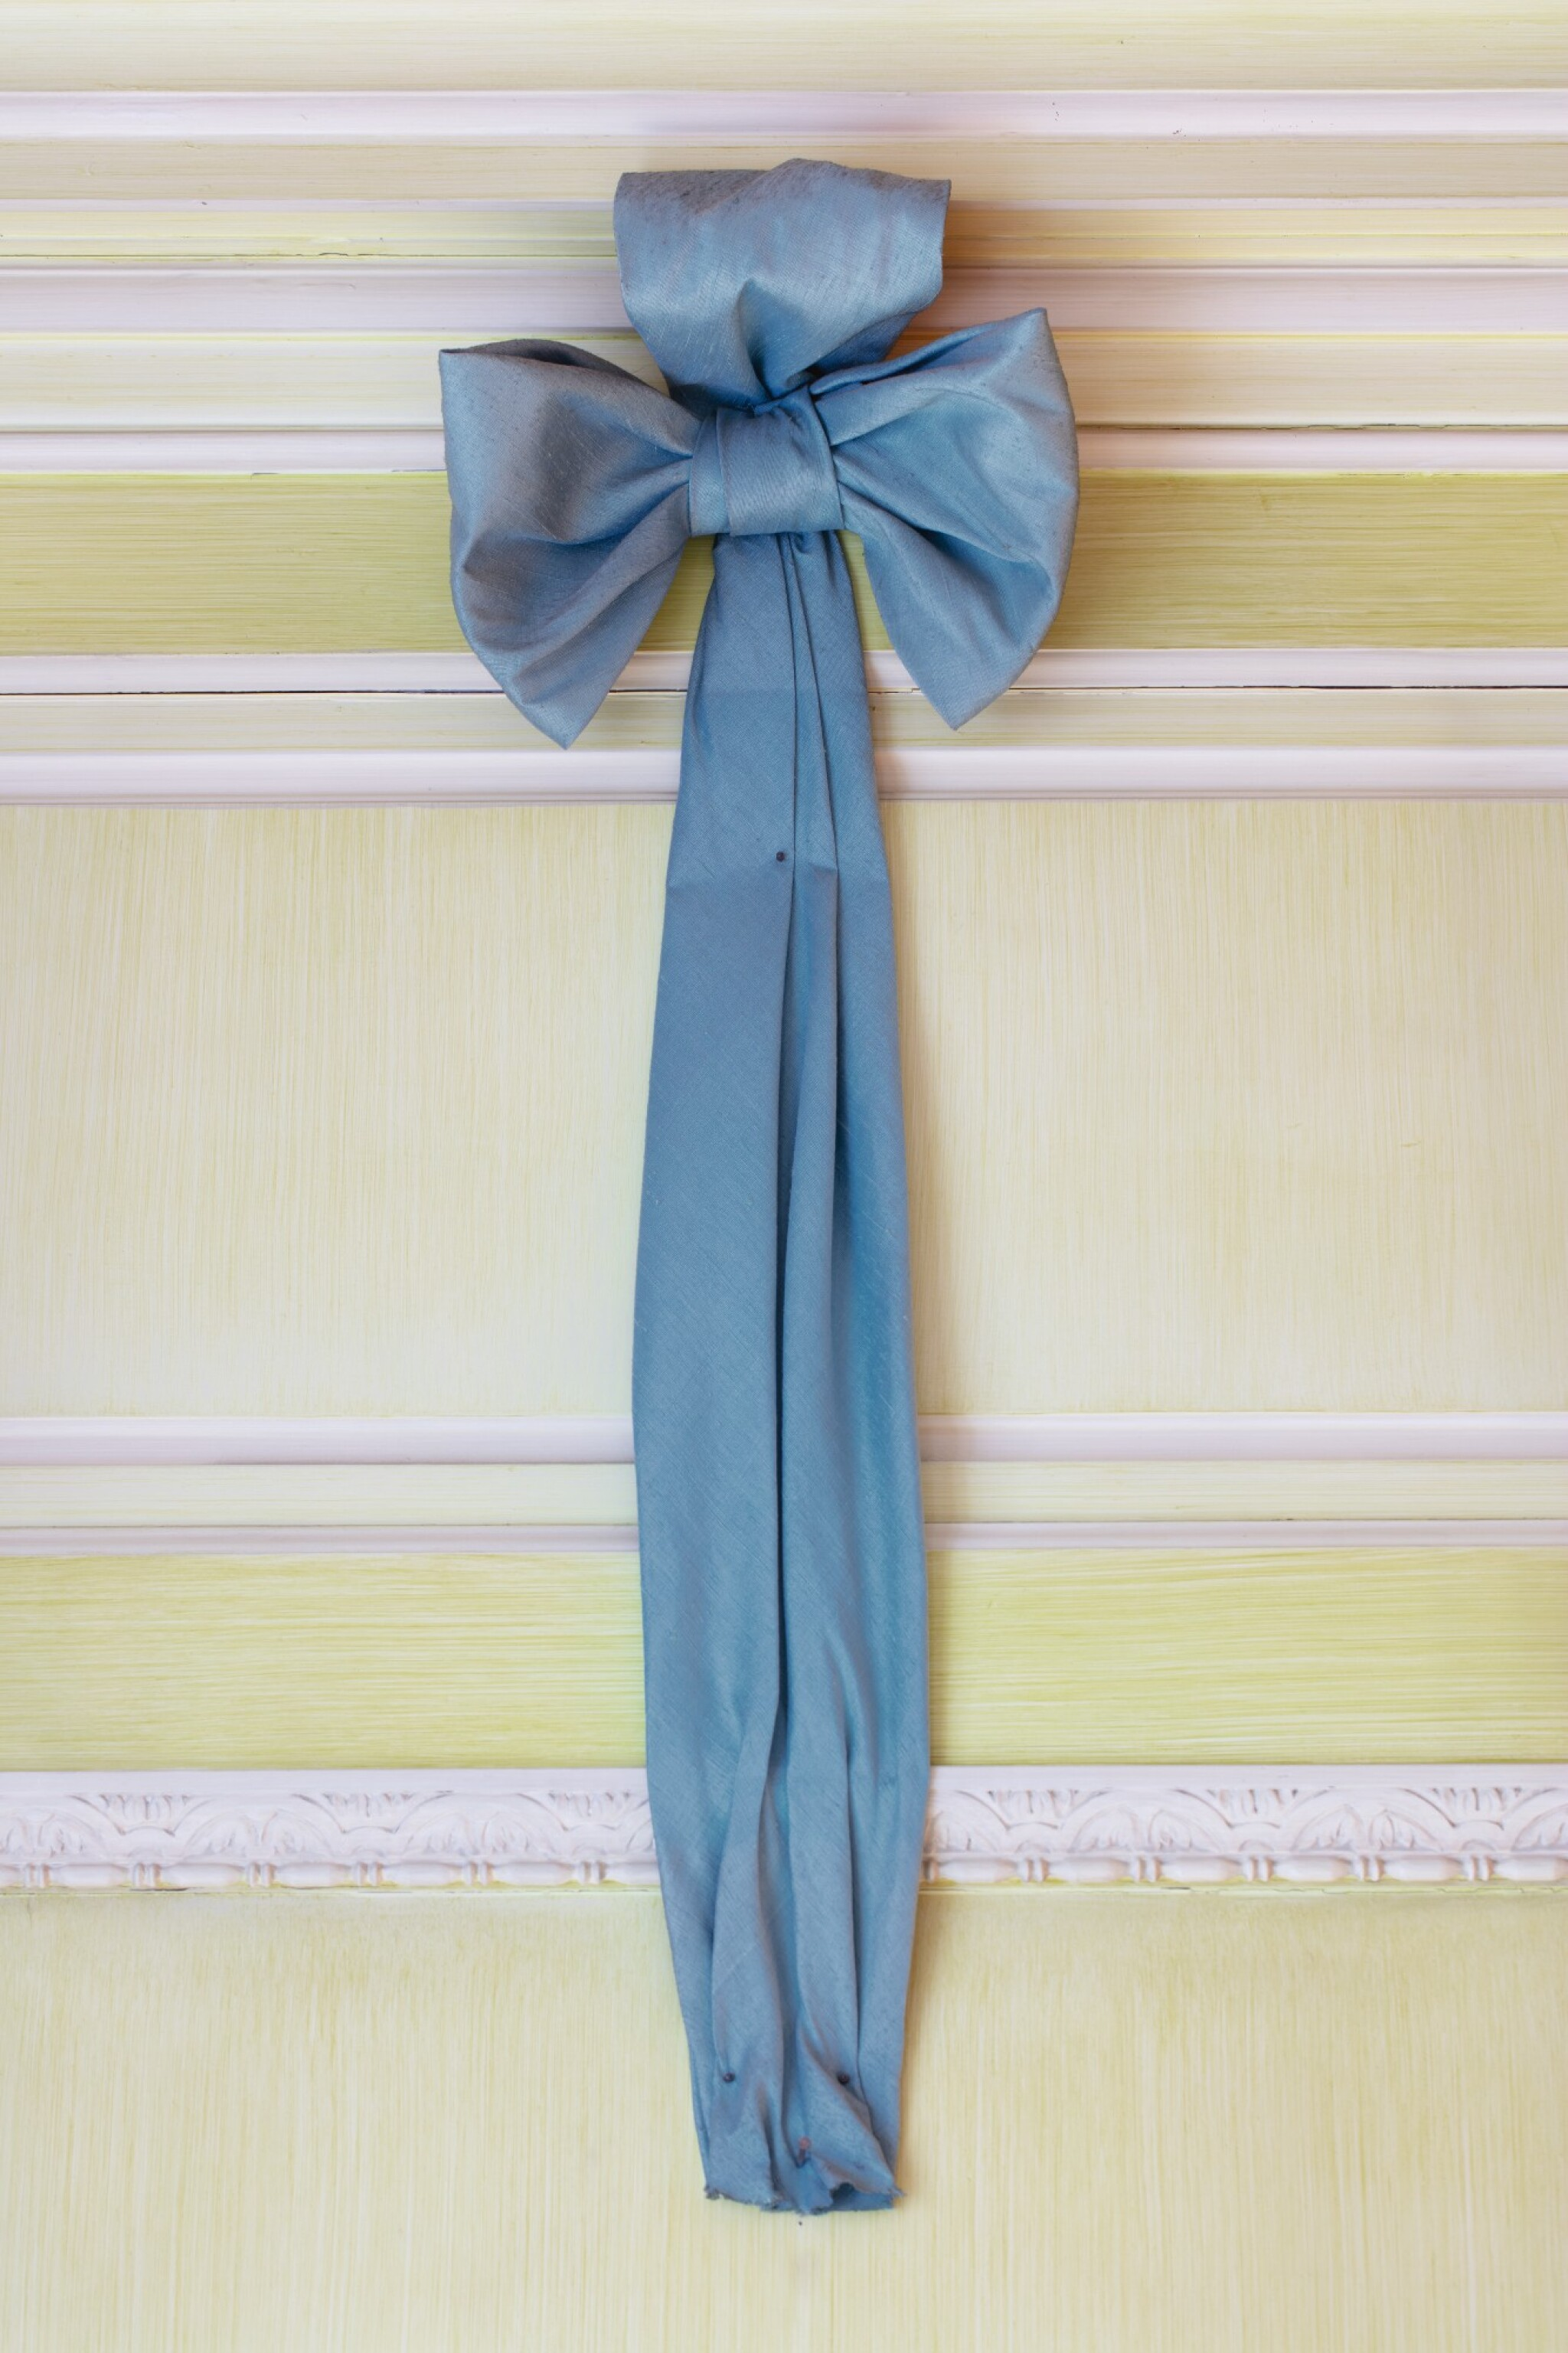 FOUR BLUE SILK BOWS, SUPPLIED BY BELFAIR FOR MARIO BUATTA'S APARTMENT